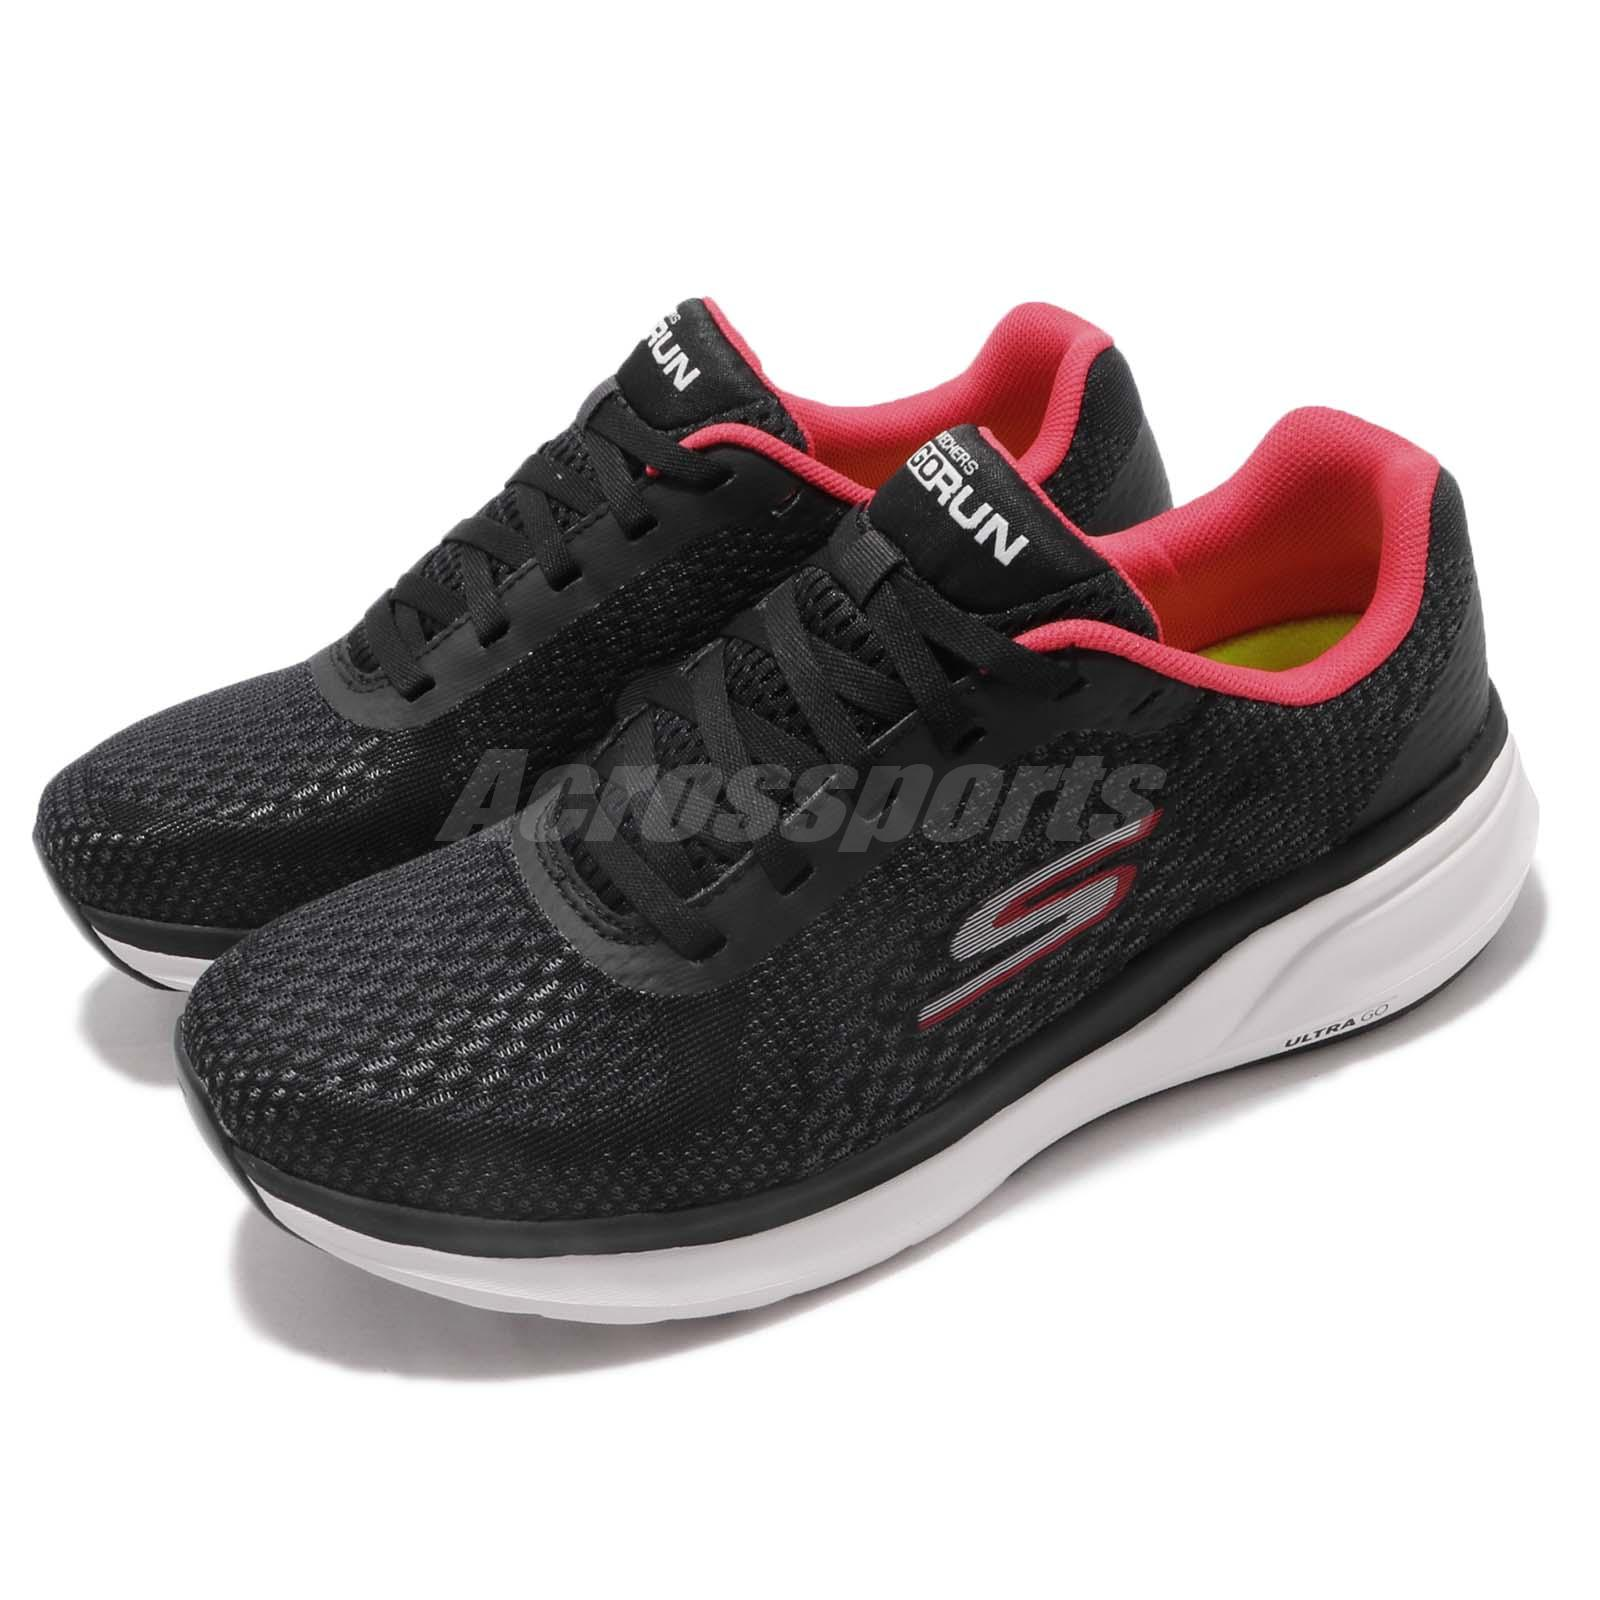 SKECHERS WOMENS GO Run Forza 2 Running Shoes #14106Bkhp